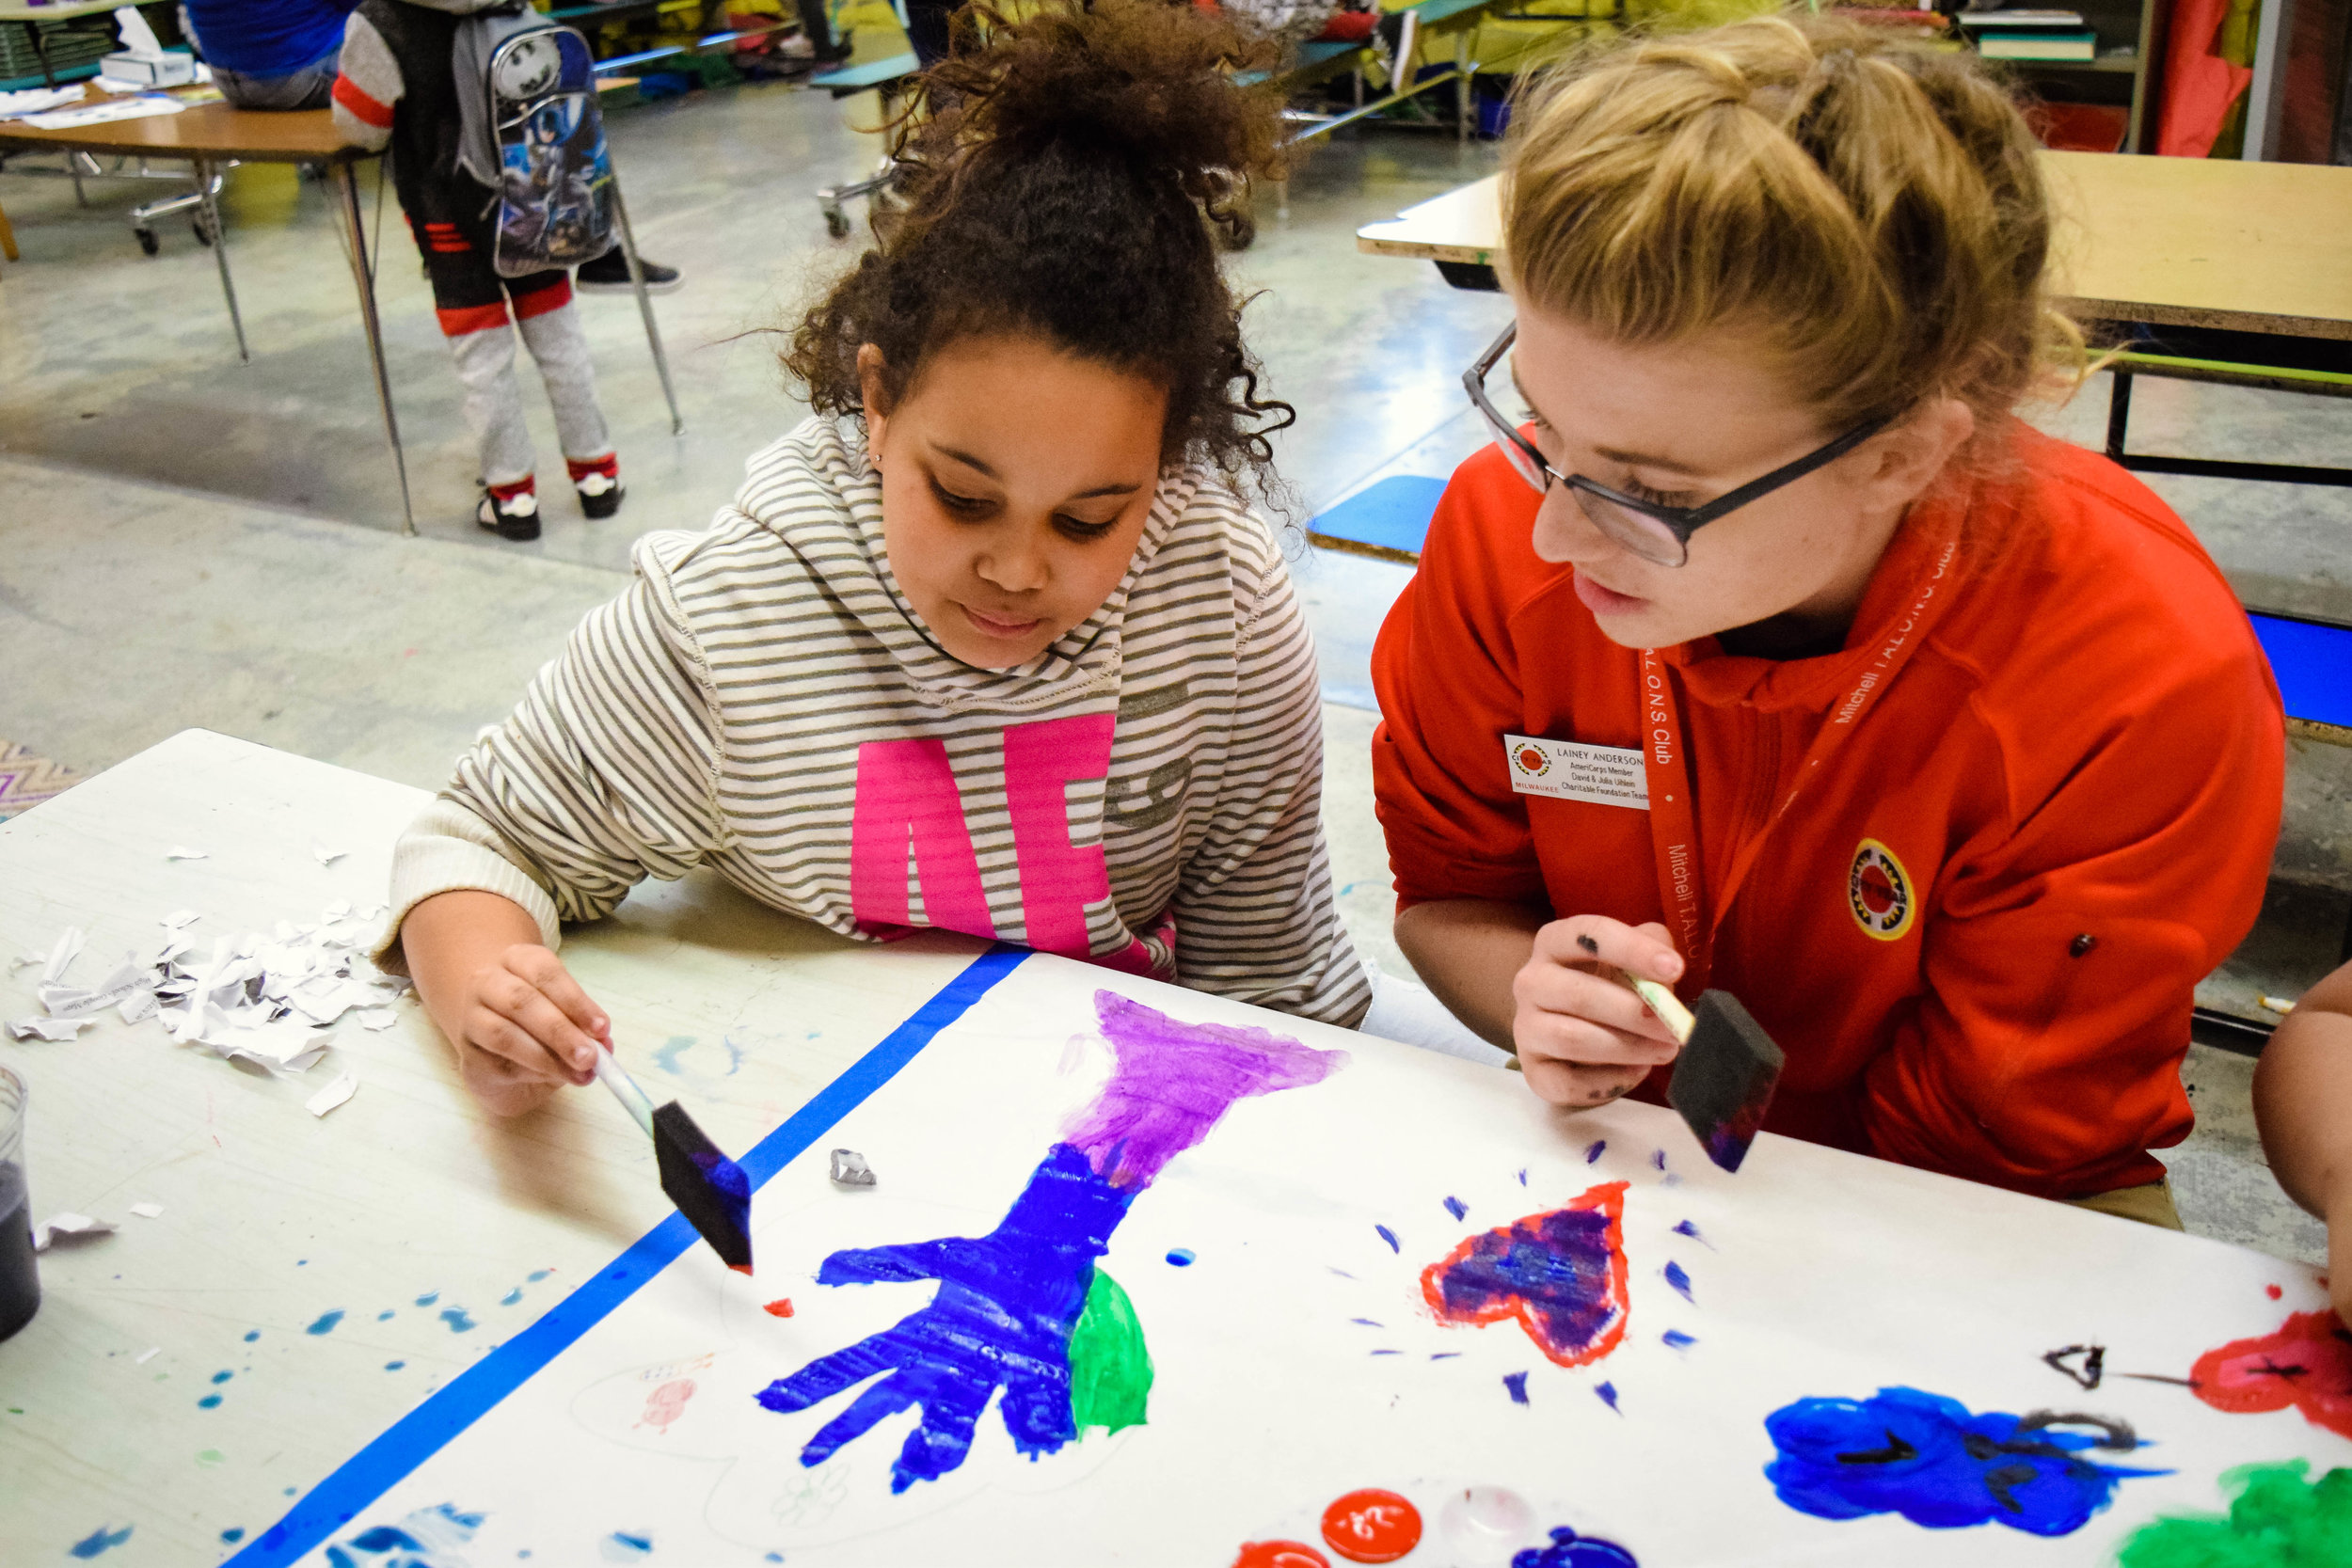 3pm Afterschool:Corps members support the Community Learning Centers that run most schools'afterschool programming.Corps members provide homework assistance, support enrichment activities, and help plan family engagement nights.